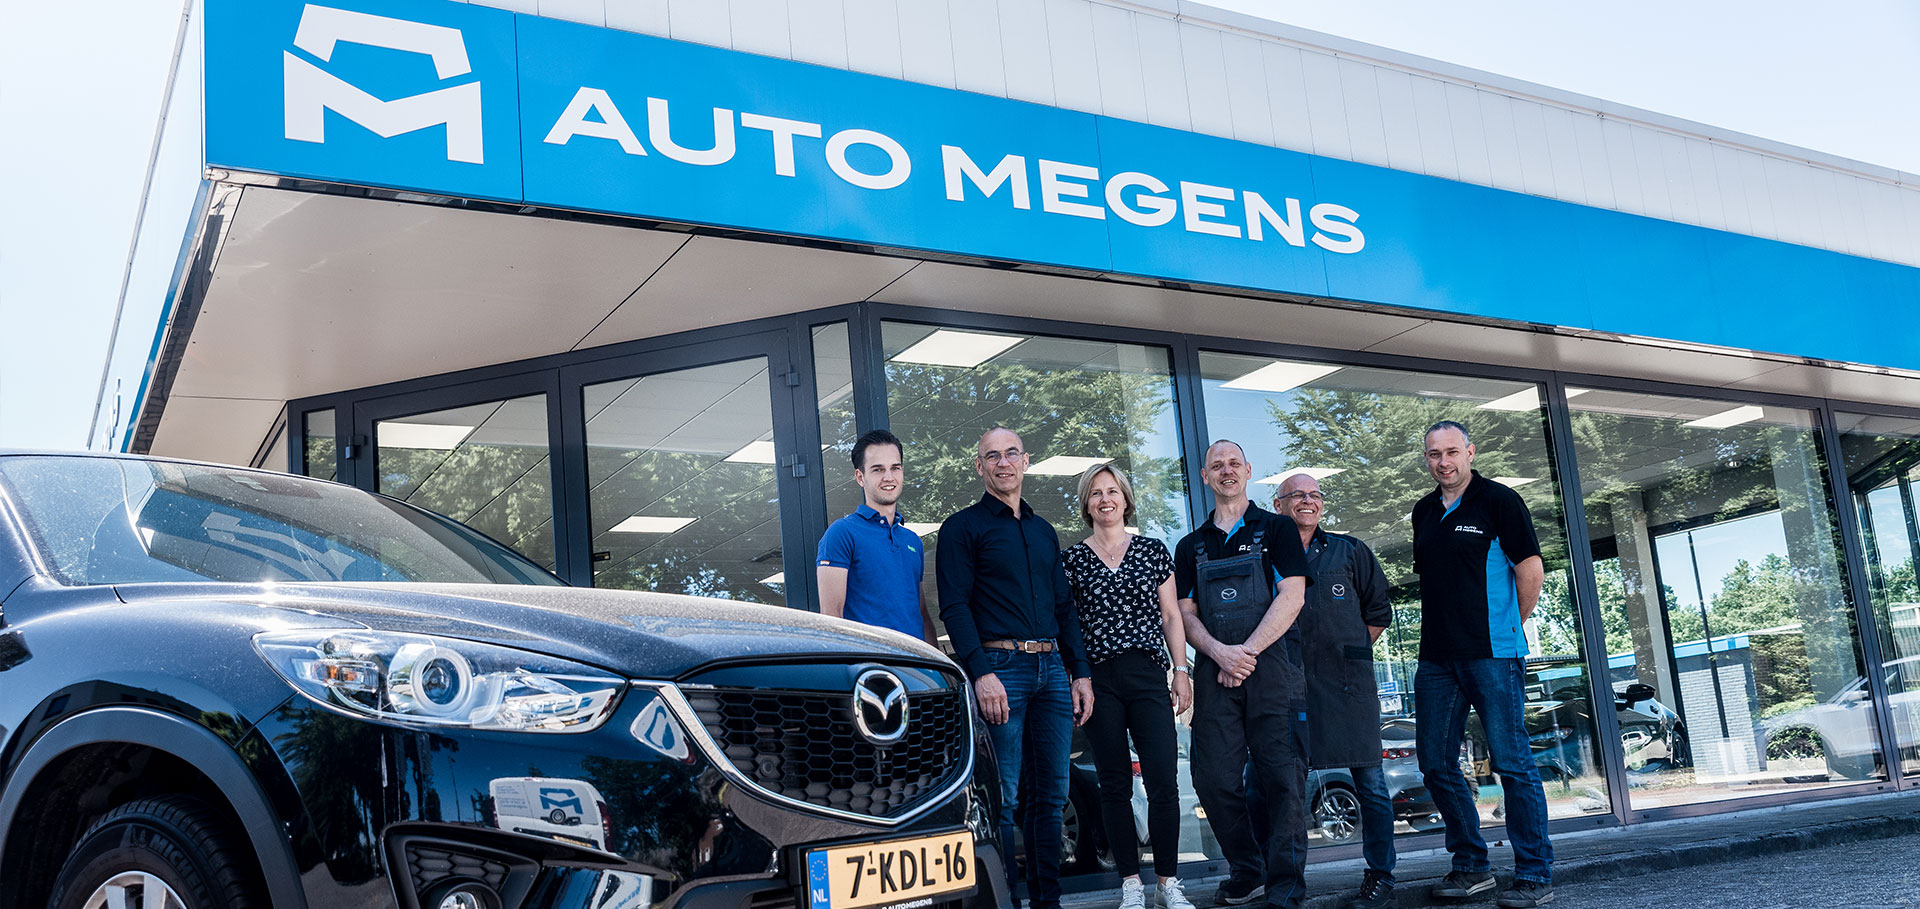 Team Auto Megens in Wijchen